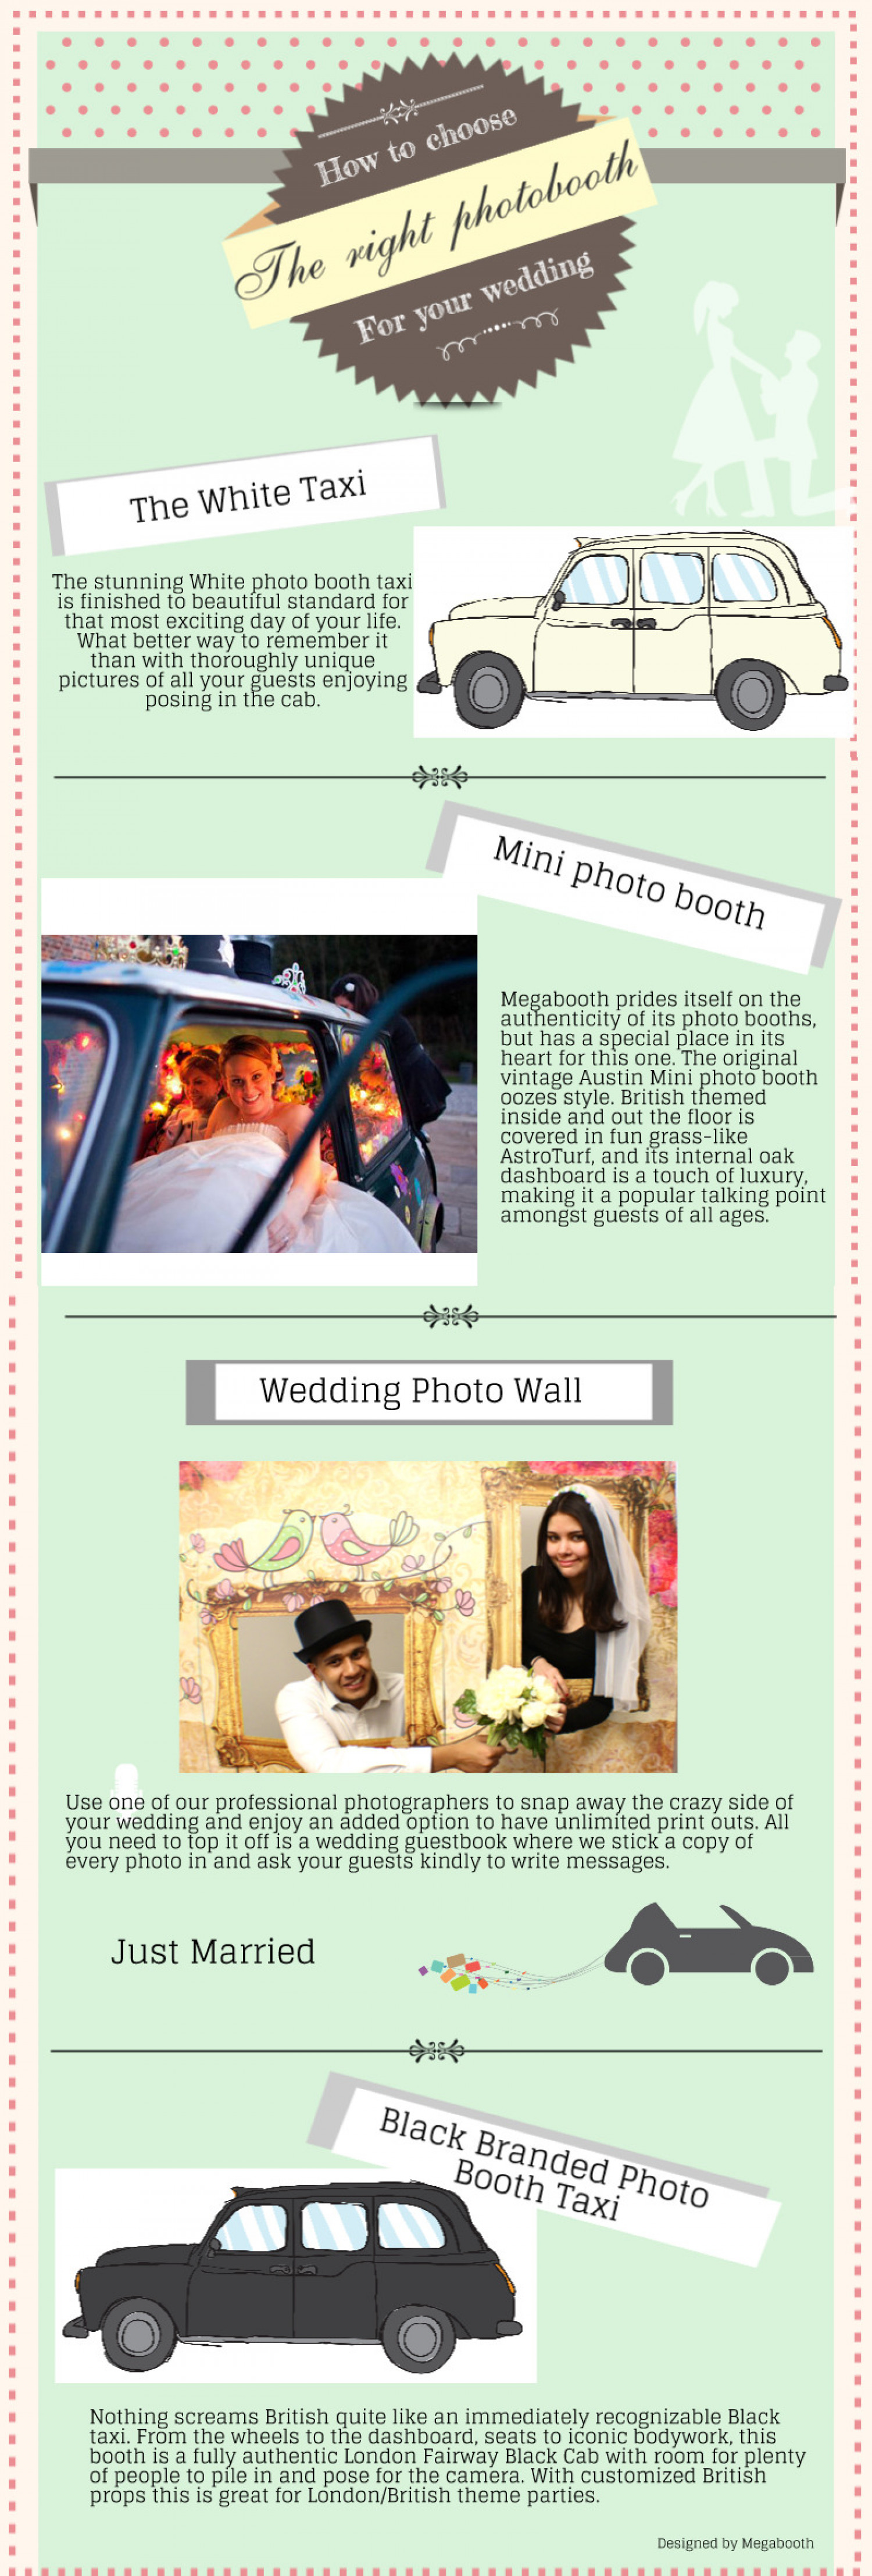 How to choose the right Photobooth for your wedding Infographic